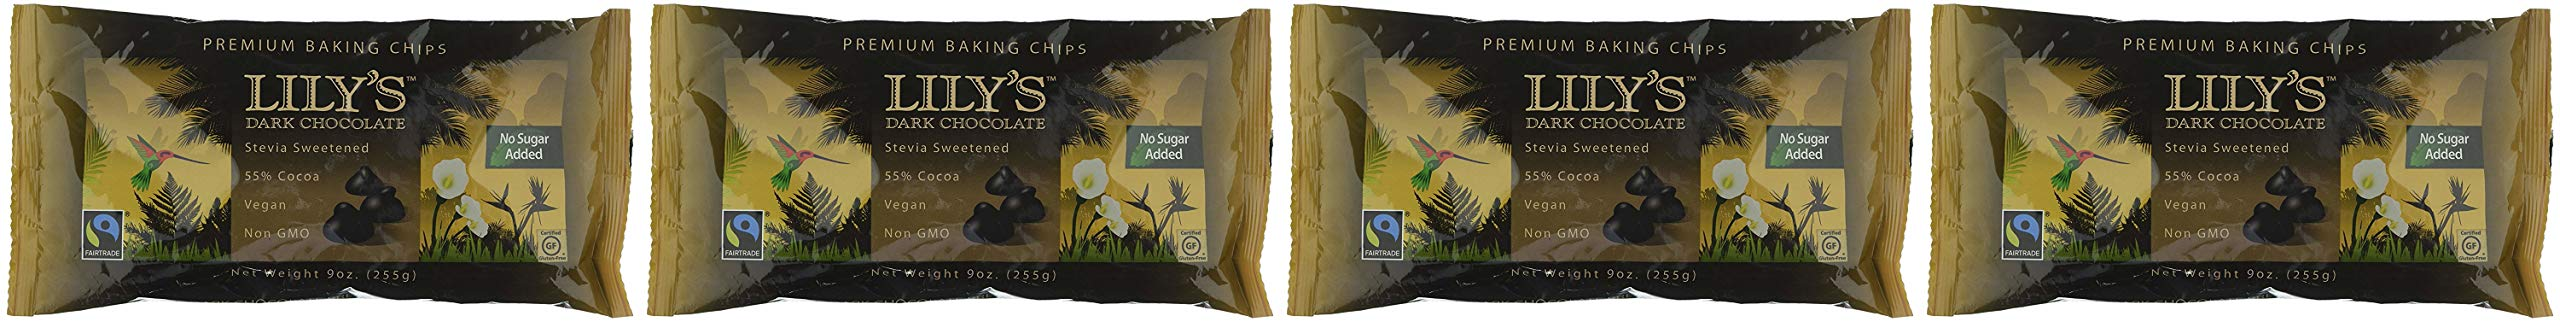 Lily's Chocolate All Natural Premium Baking Chips, Dark Chocolate, 4 Count - 4-Pack by Lily's Chocolate (Image #3)